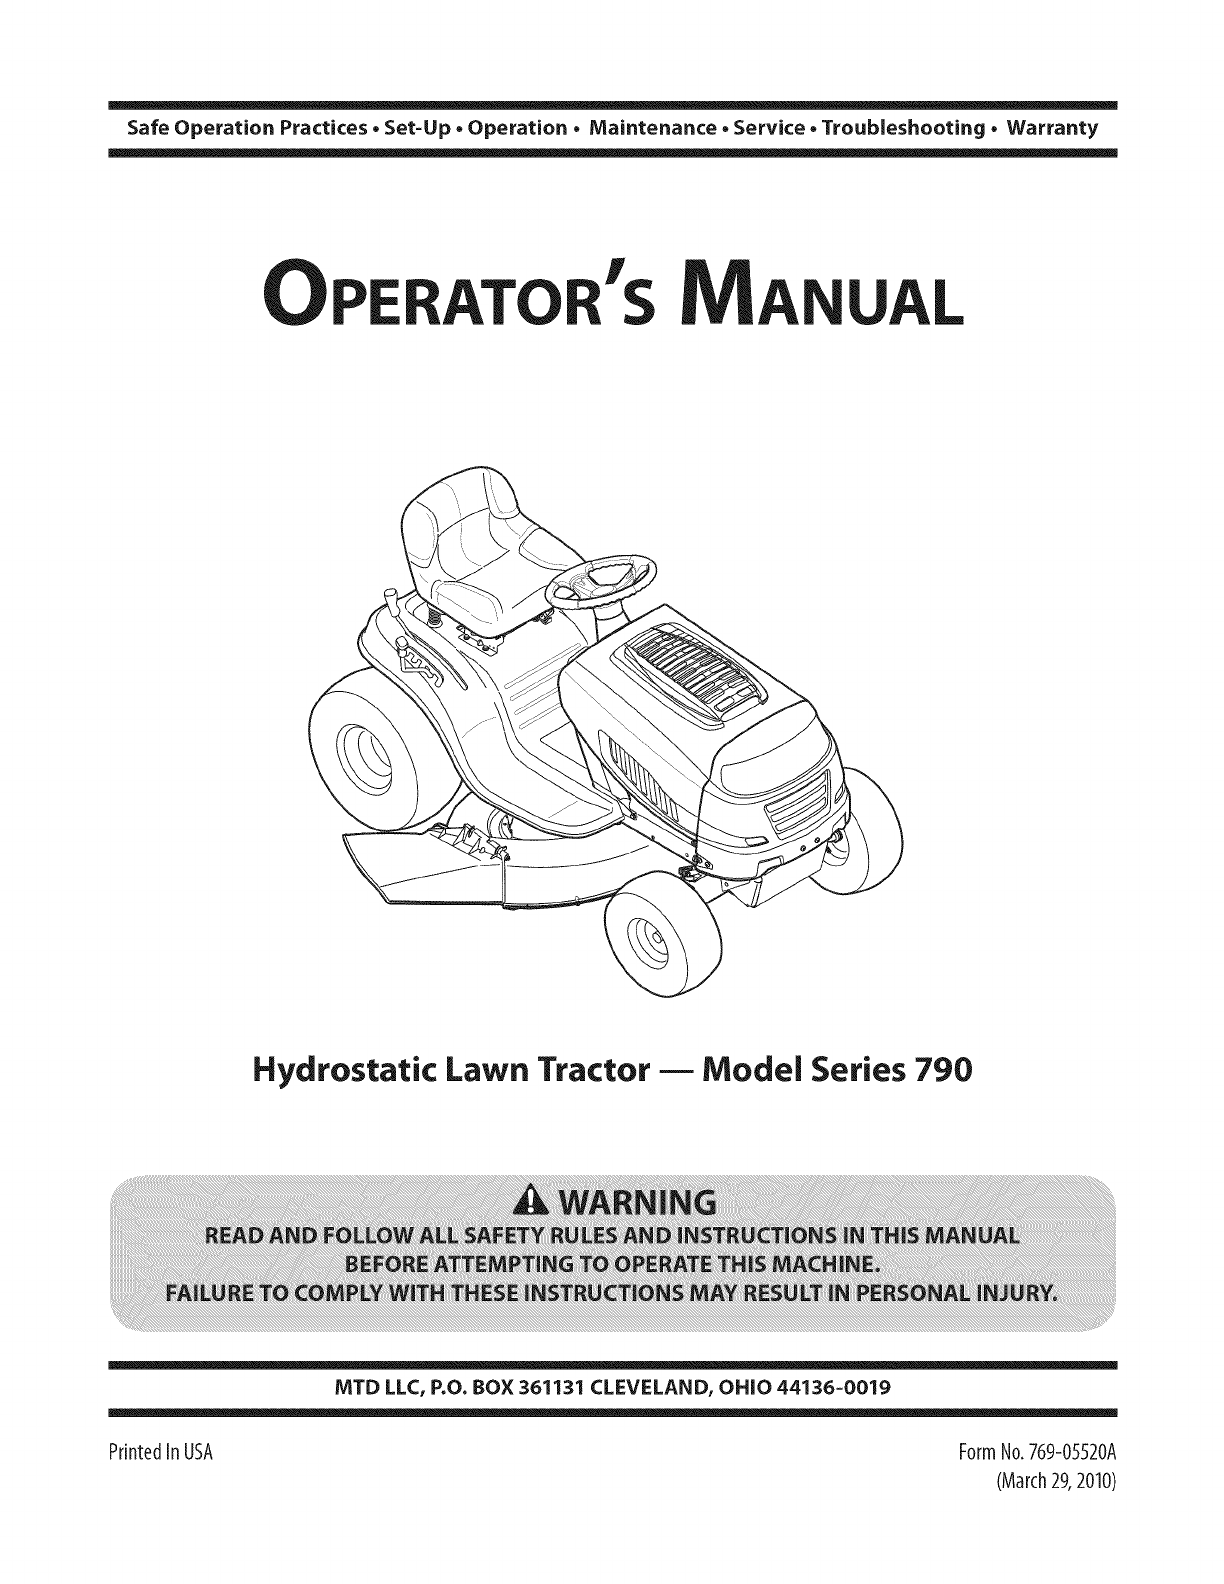 MTD 13AJ795S004 User Manual LAWN TRACTOR Manuals And Guides